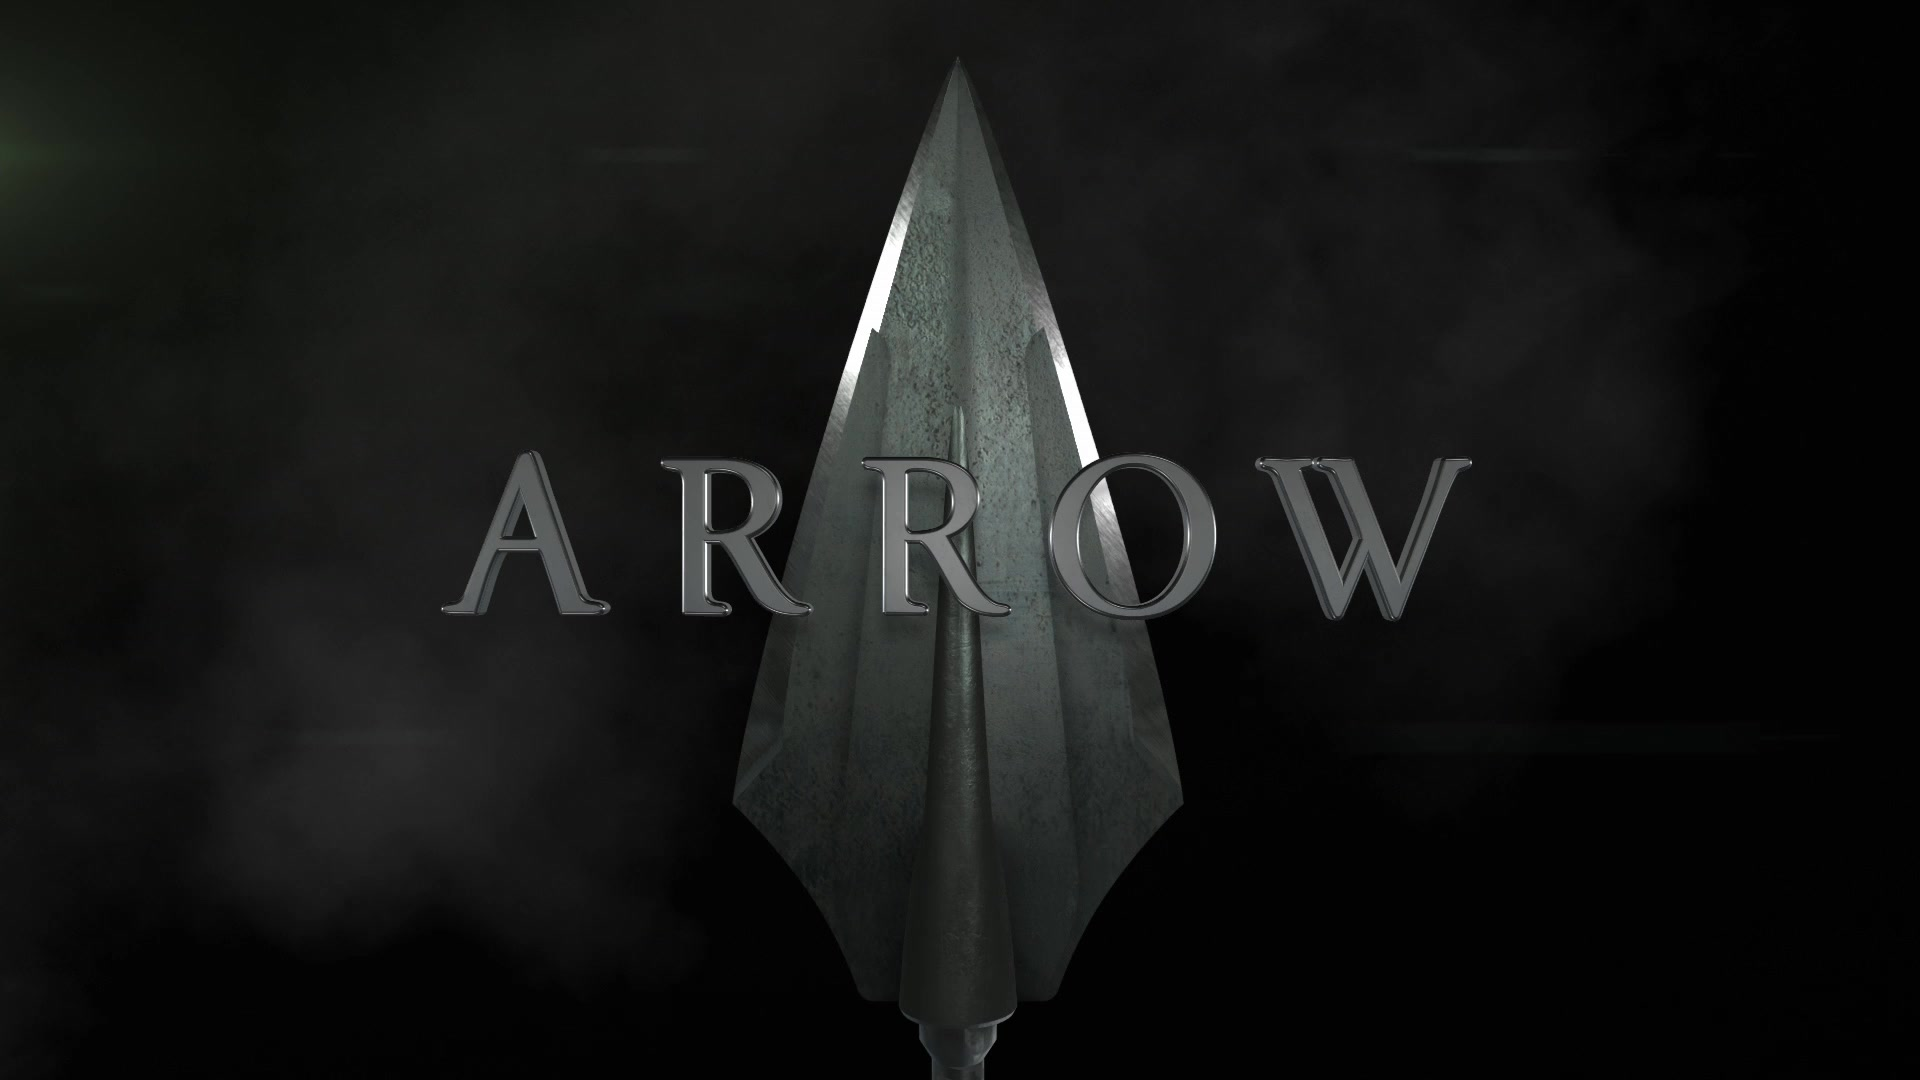 Arrow (TV Series) Episode: Confessions